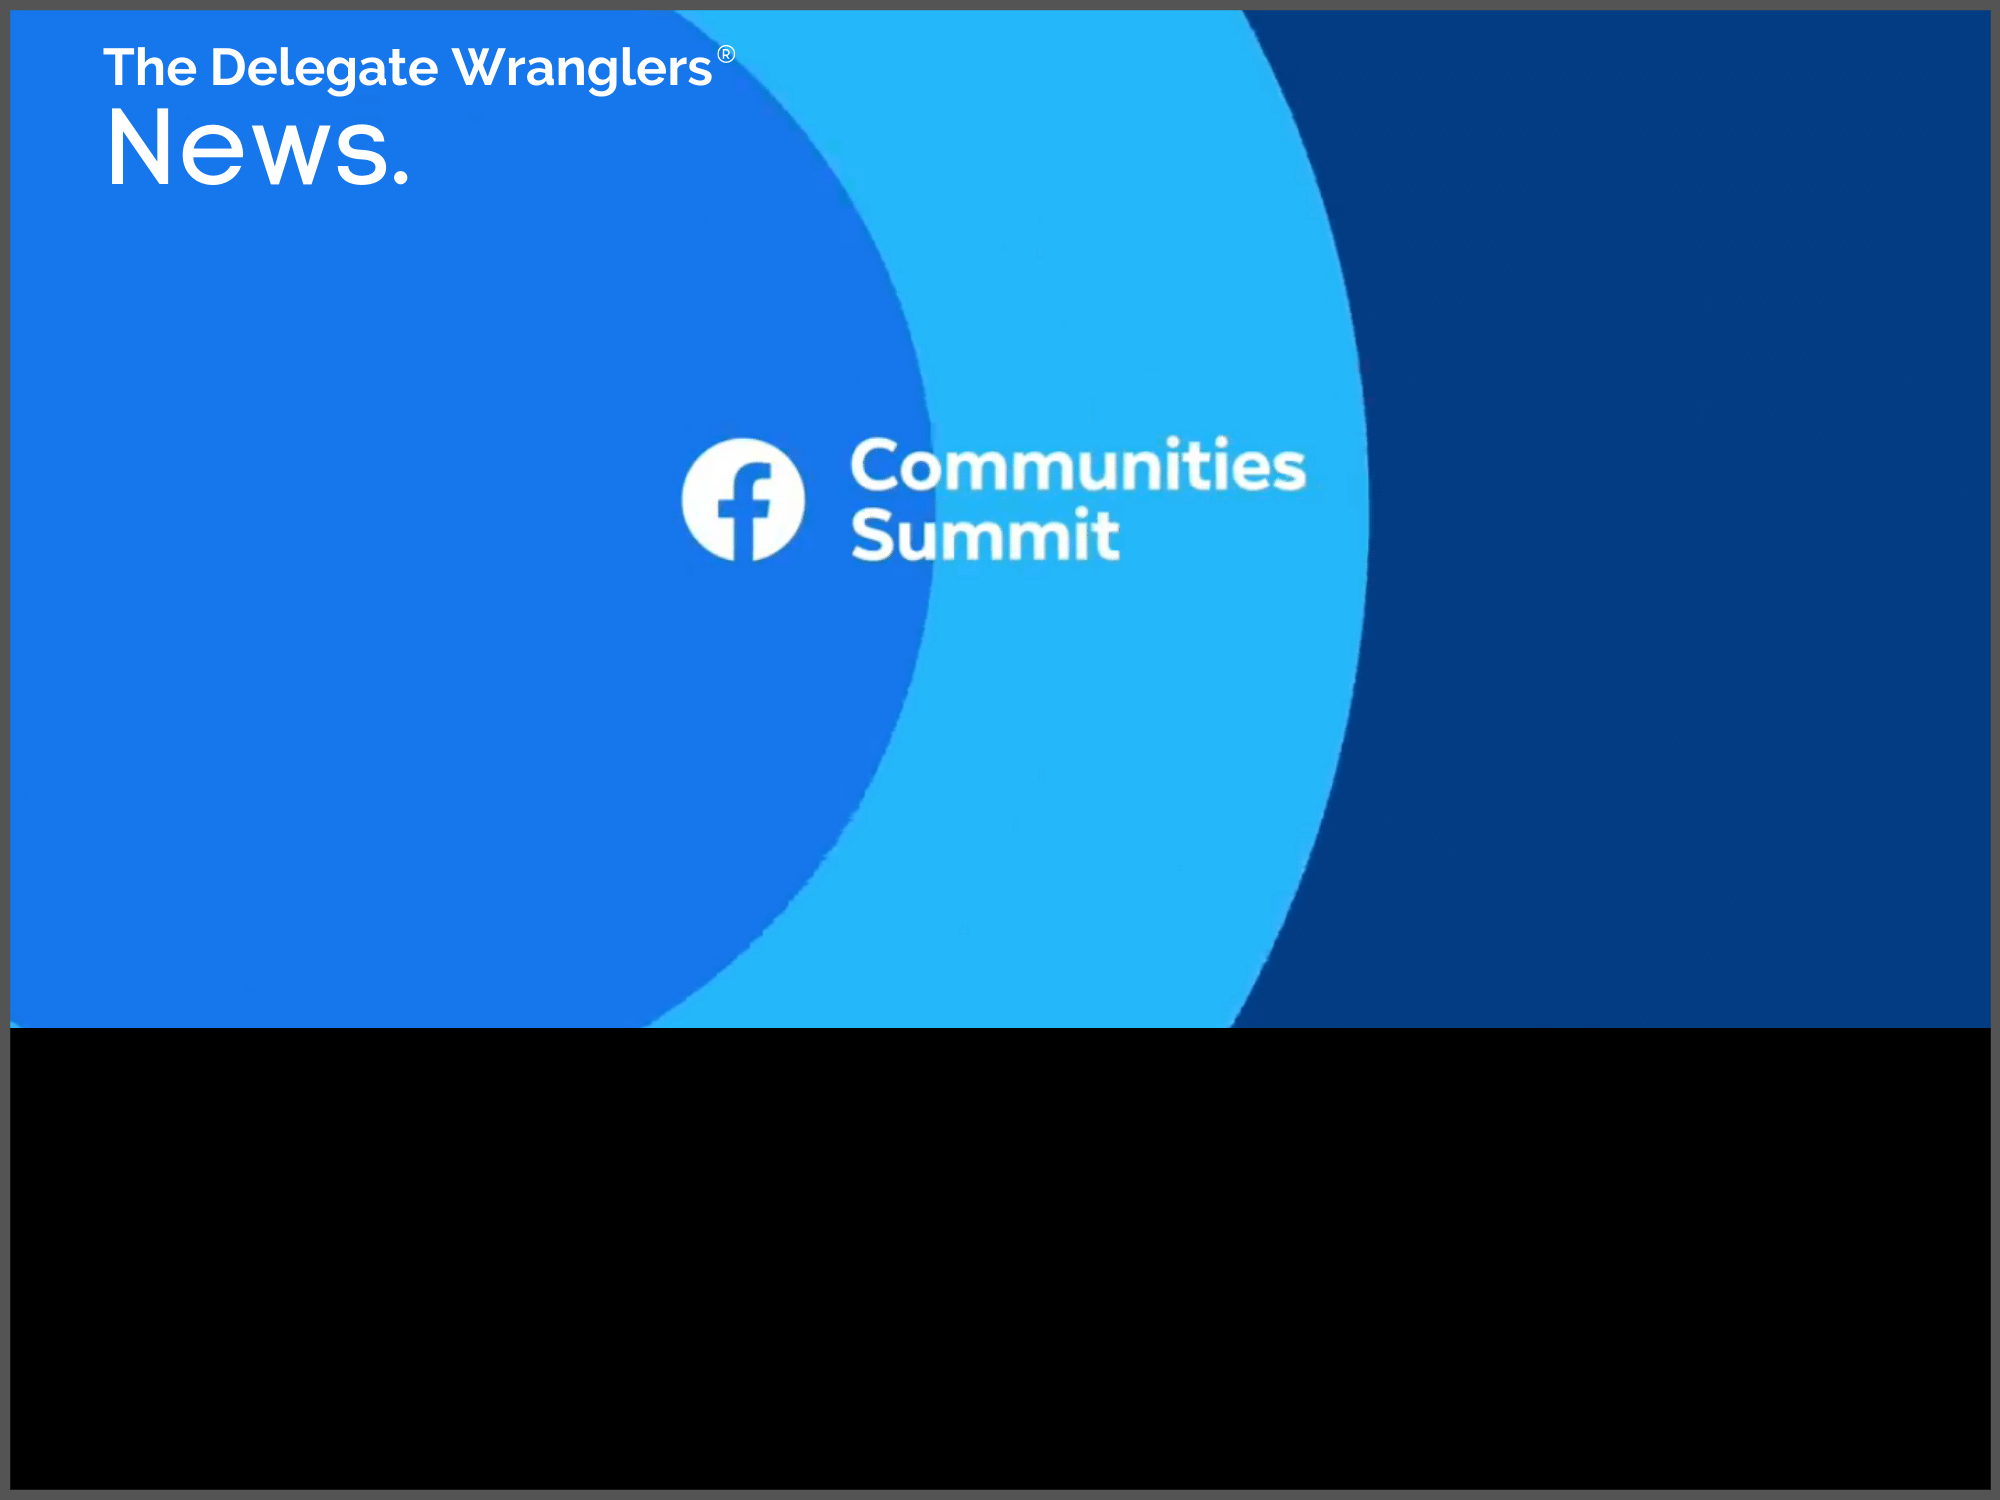 Exciting news for groups from the recent Facebook Communities Summit 2020